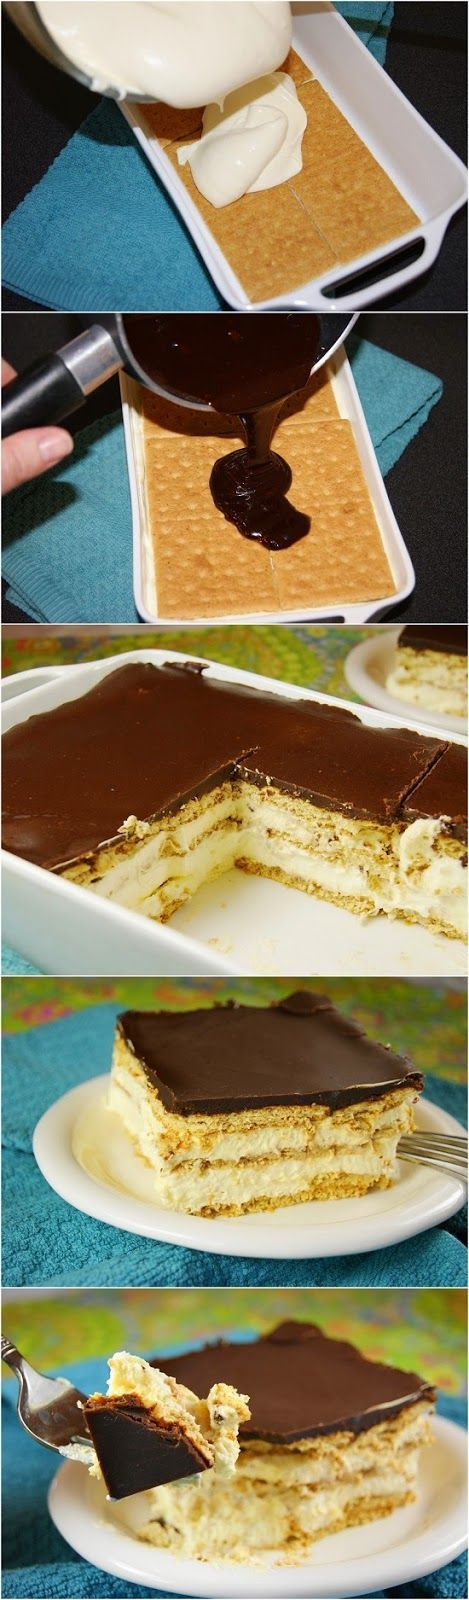 No-Bake Chocolate Éclair Dessert ~ With just a few ingredients and minimum efforts make a delightful dessert that doesn't even requires any baking.